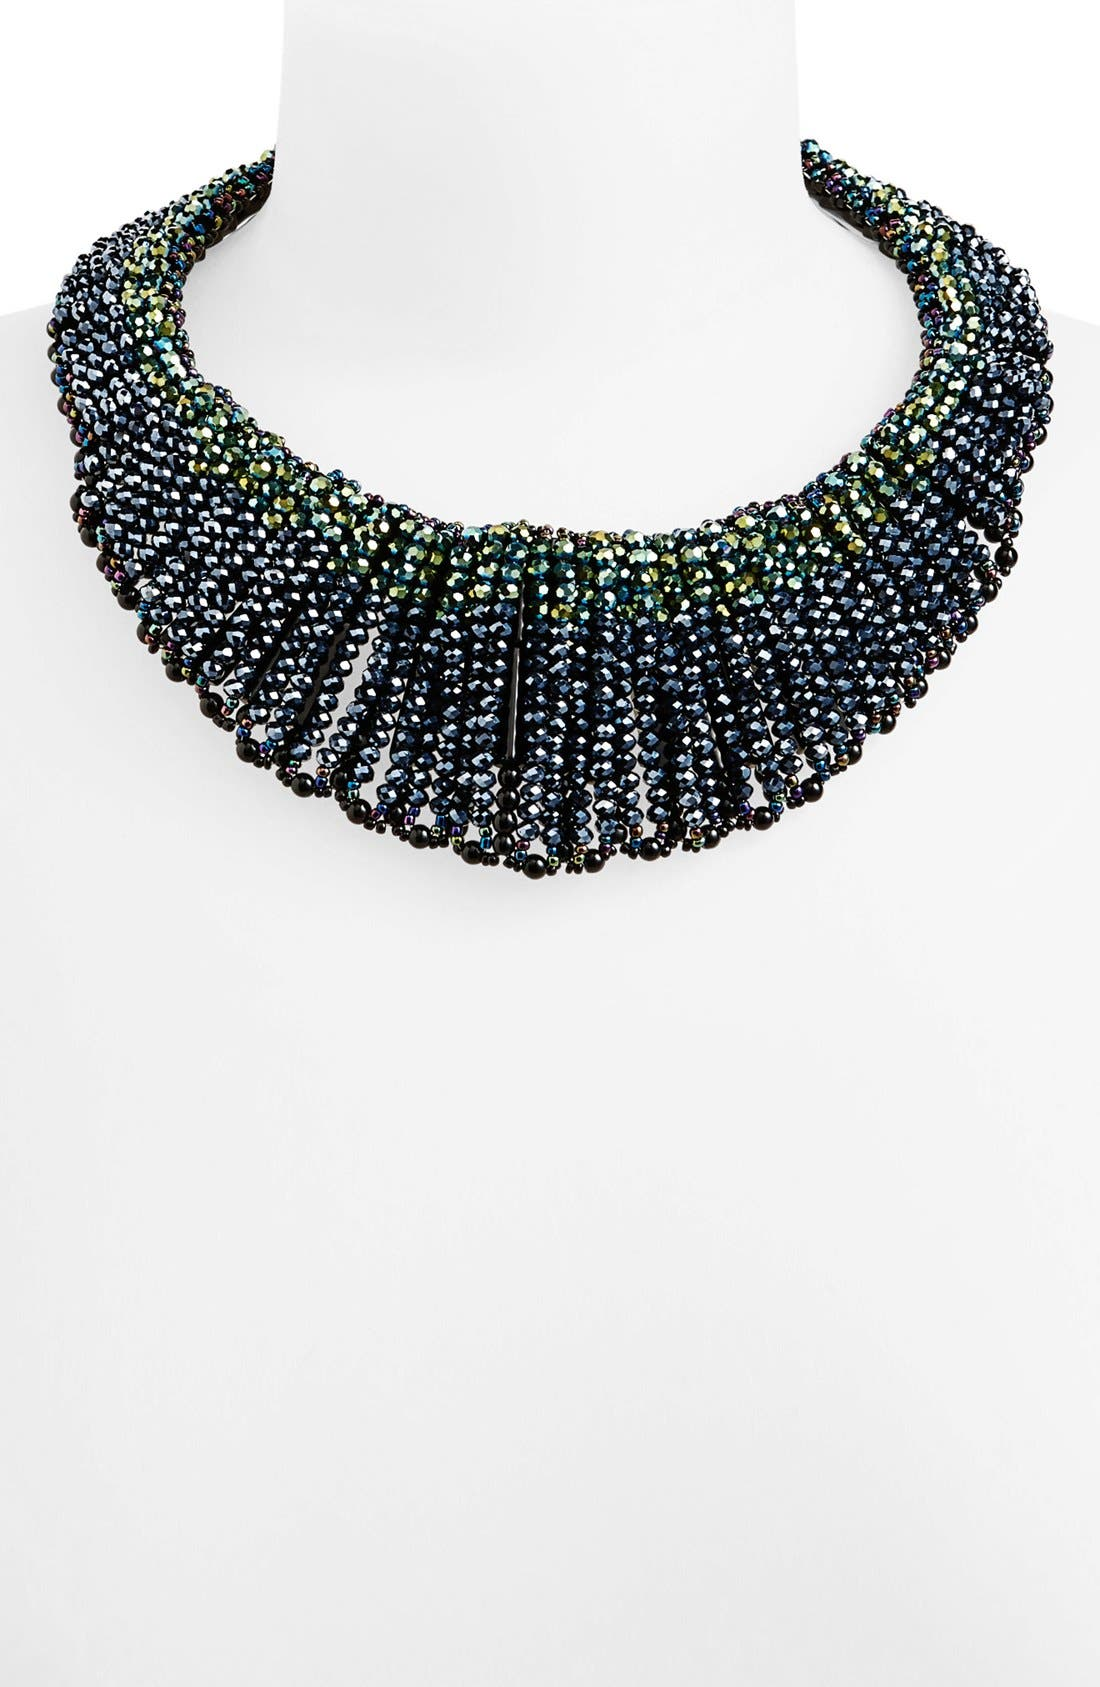 Alternate Image 1 Selected - Nakamol Design Multistrand Collar Necklace